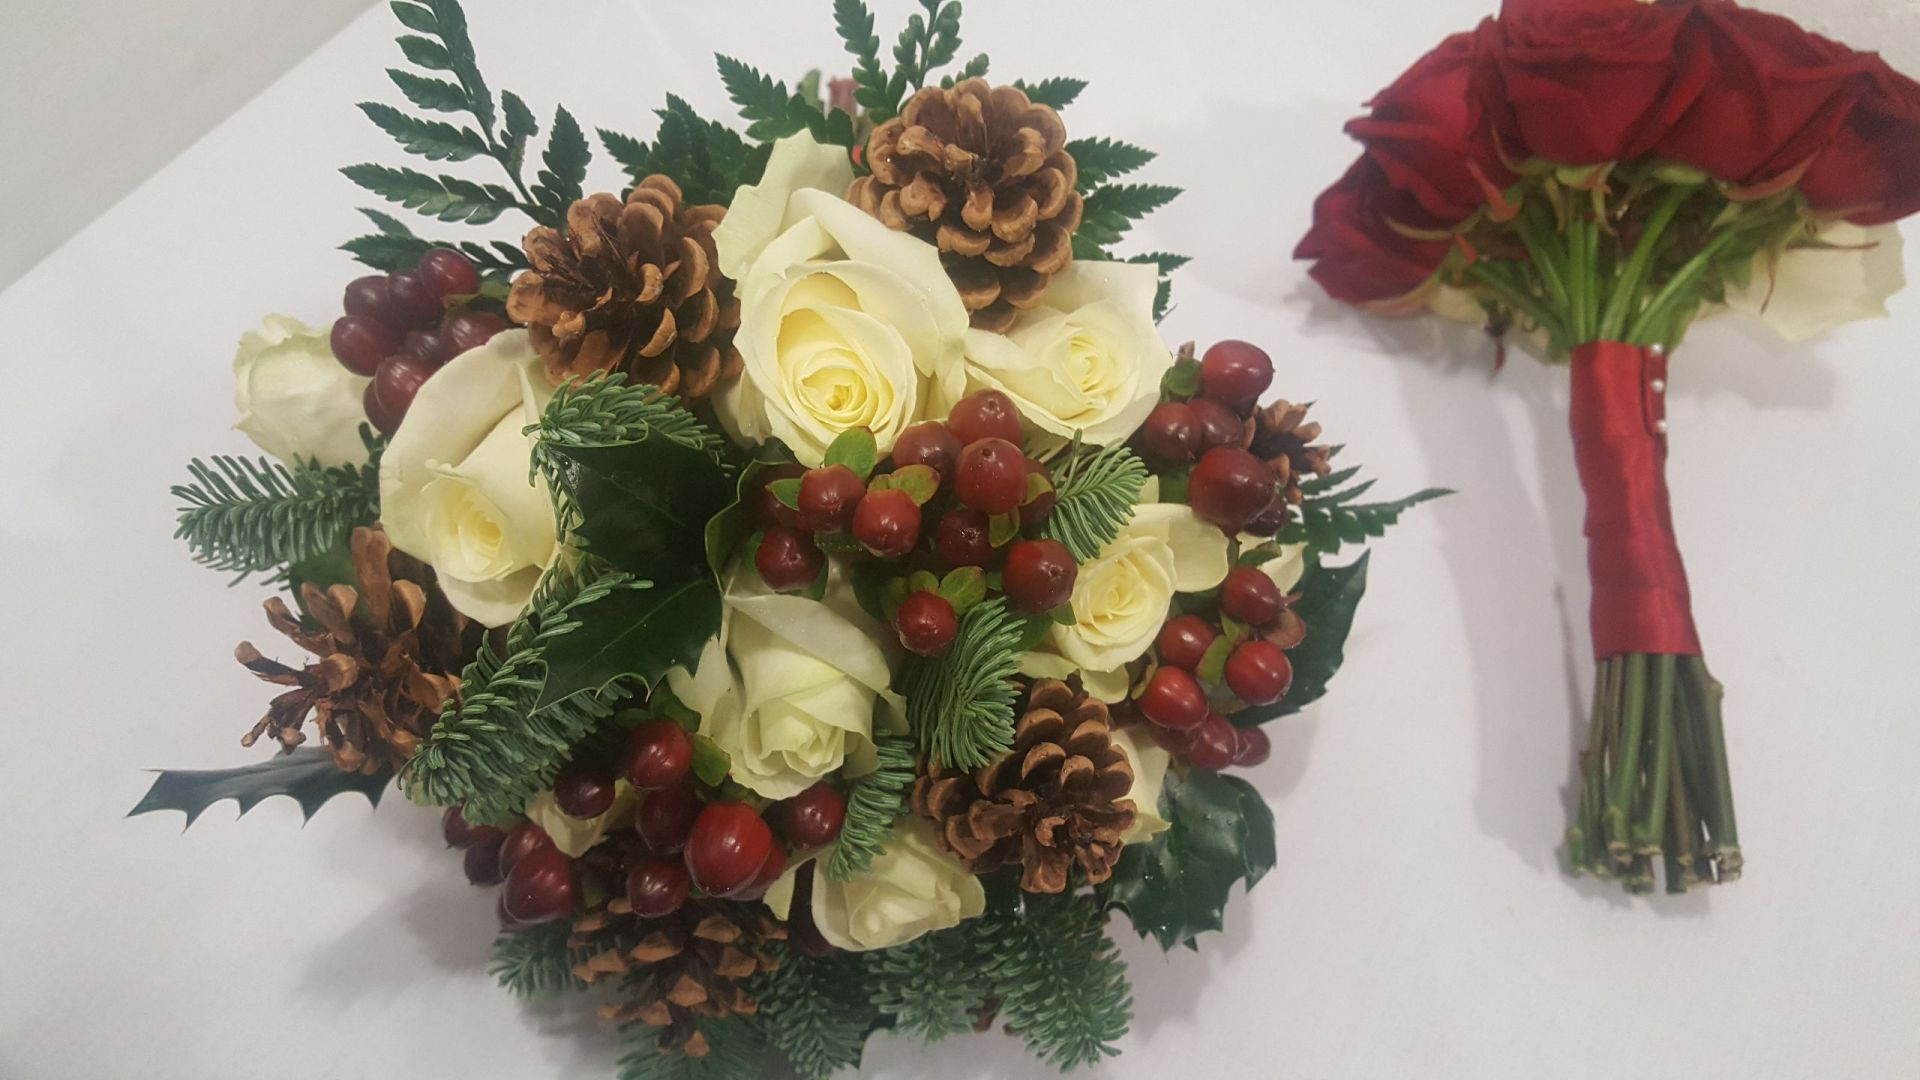 Autumn Themed Bouquet with Pinecones & Berries